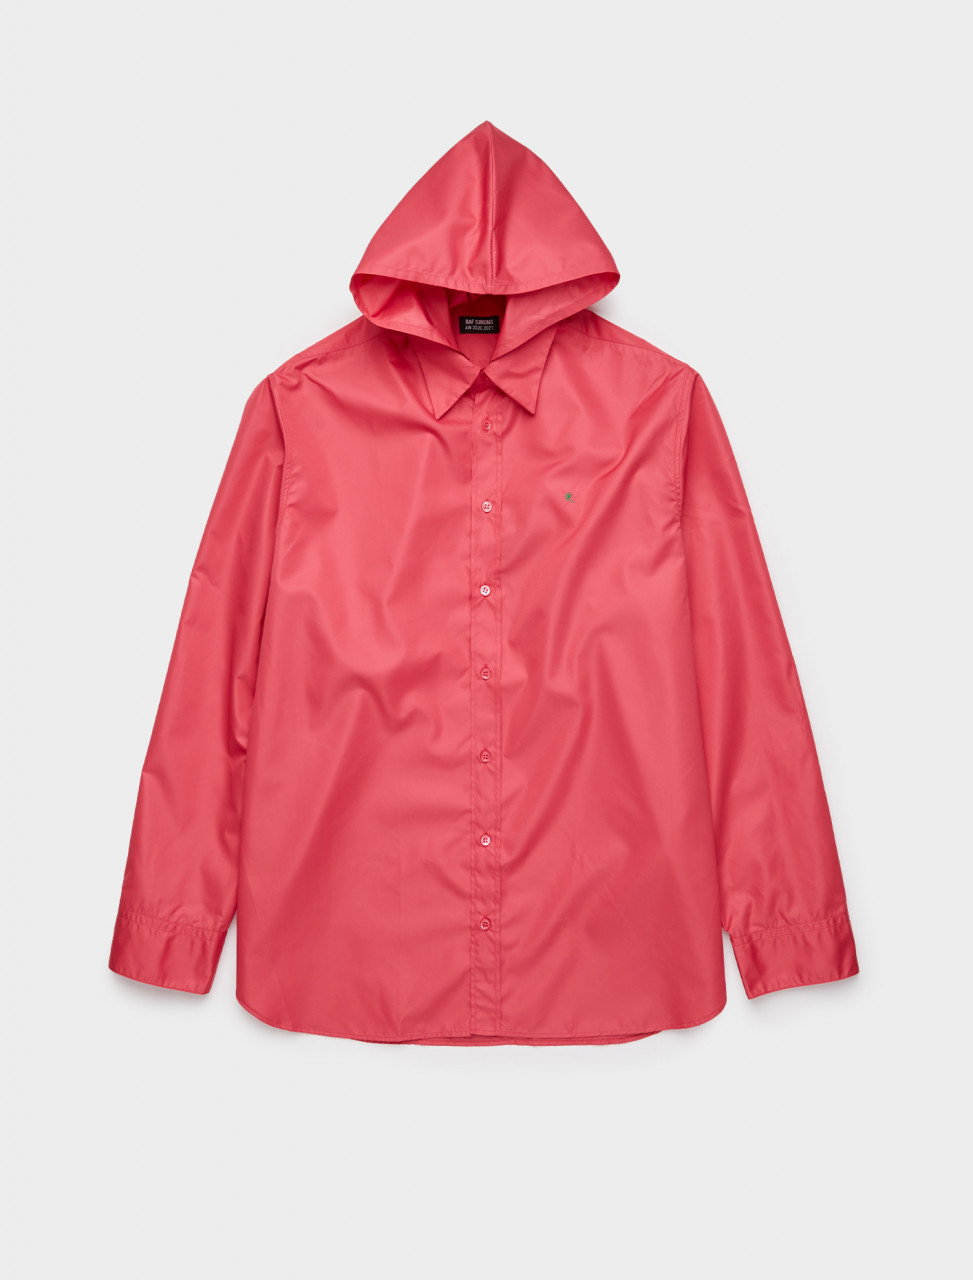 162-202-282-30002-00031 RAF SIMONS STRAIGHT FIT R SHIRT W HOOD PINK